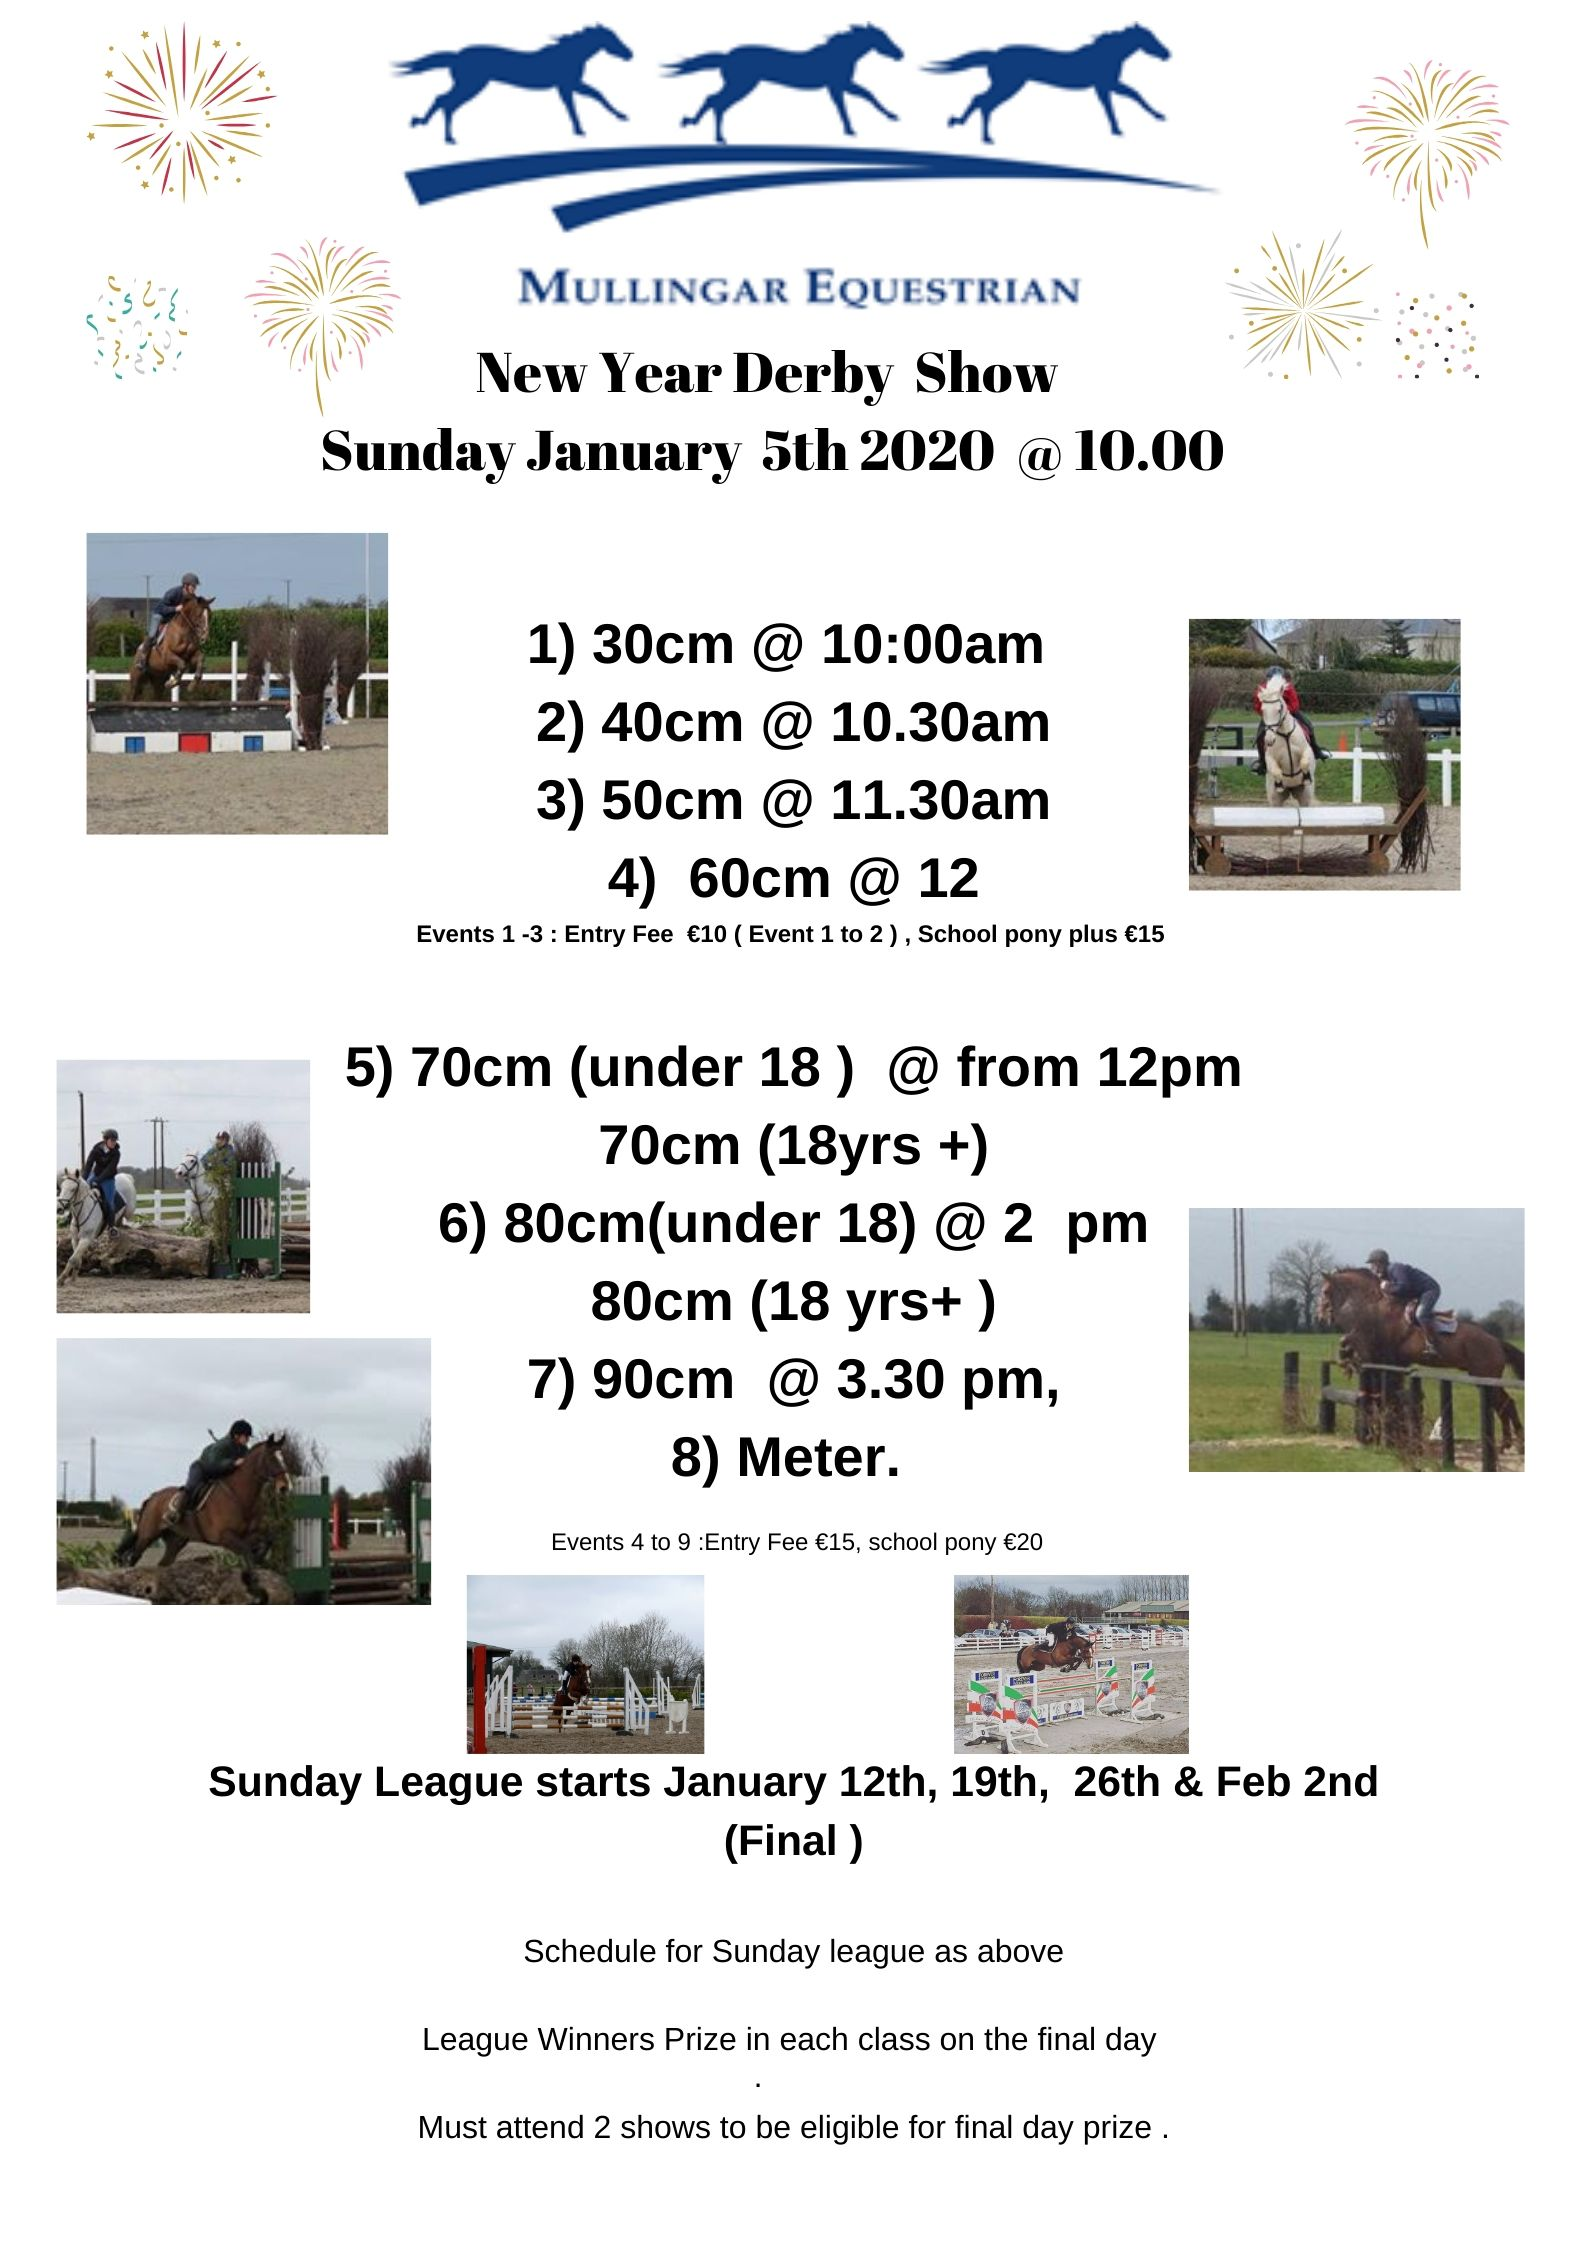 New Year Indoor Derby Show  & RESULTS